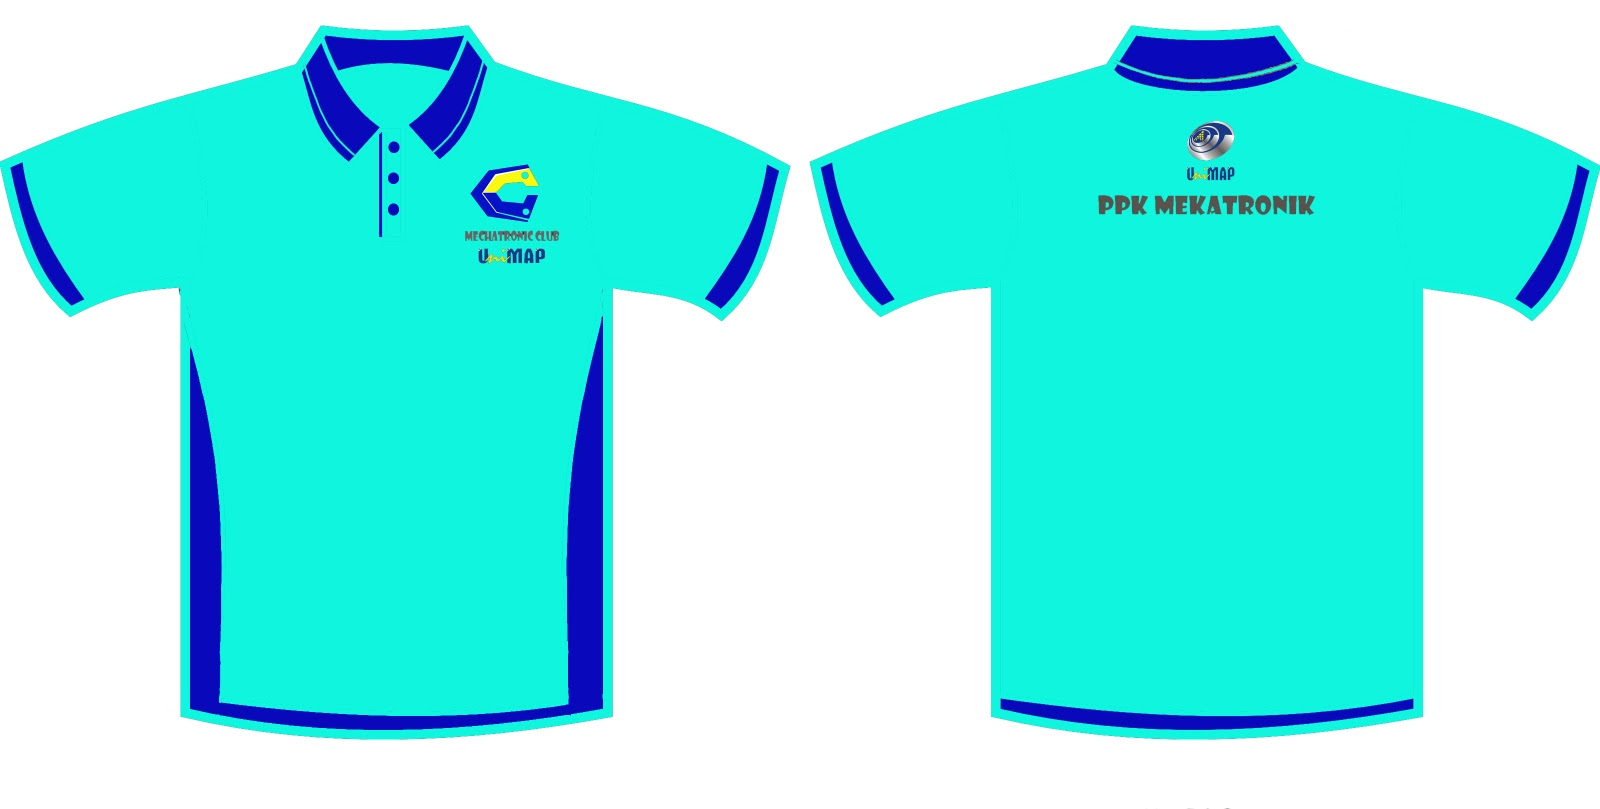 Established since , our growth in the T-Shirt printing industry can be attributed to our focus on providing superior quality printed t-shirts Read More Pakar Cetak Baju (PCB), a subsidiary of PMZ Permai Sdn. Bhd. (A) is a clothing manufacturer, distributor and marketer based in Puncak Alam, Selangor, Malaysia.